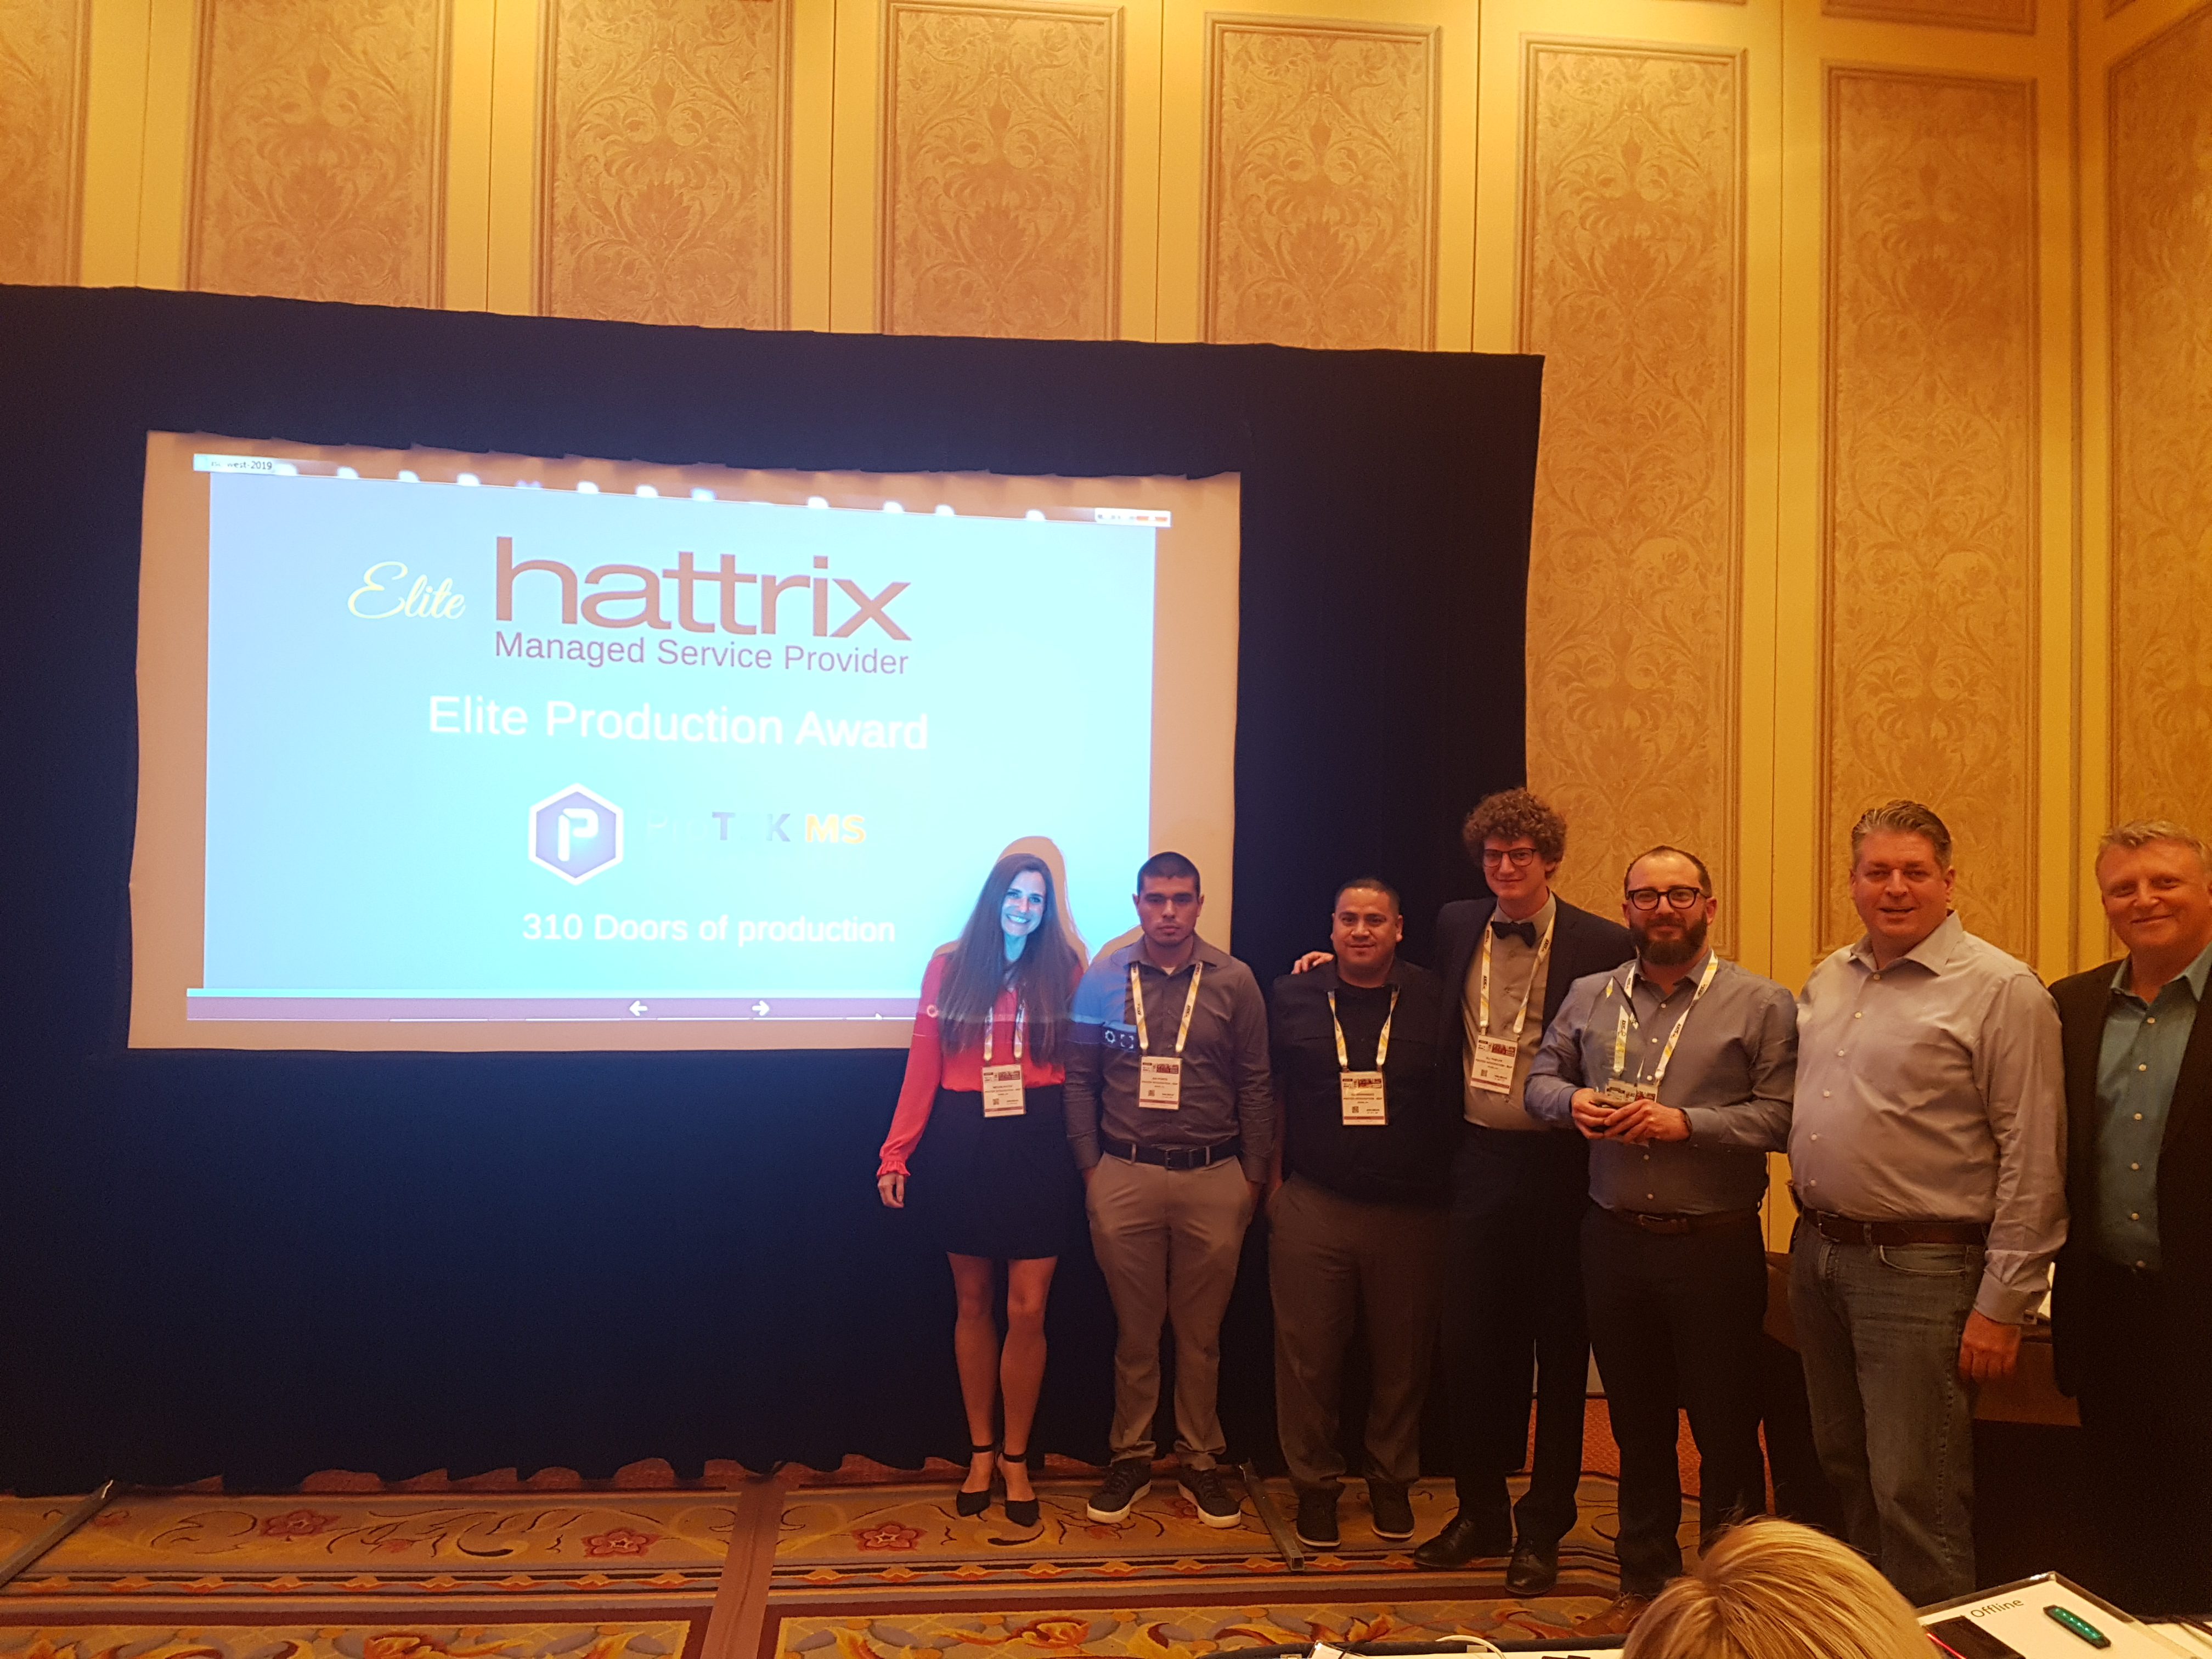 hattrix msp roundtable awards recognition isc west 2019 kantech access control. Black Bedroom Furniture Sets. Home Design Ideas